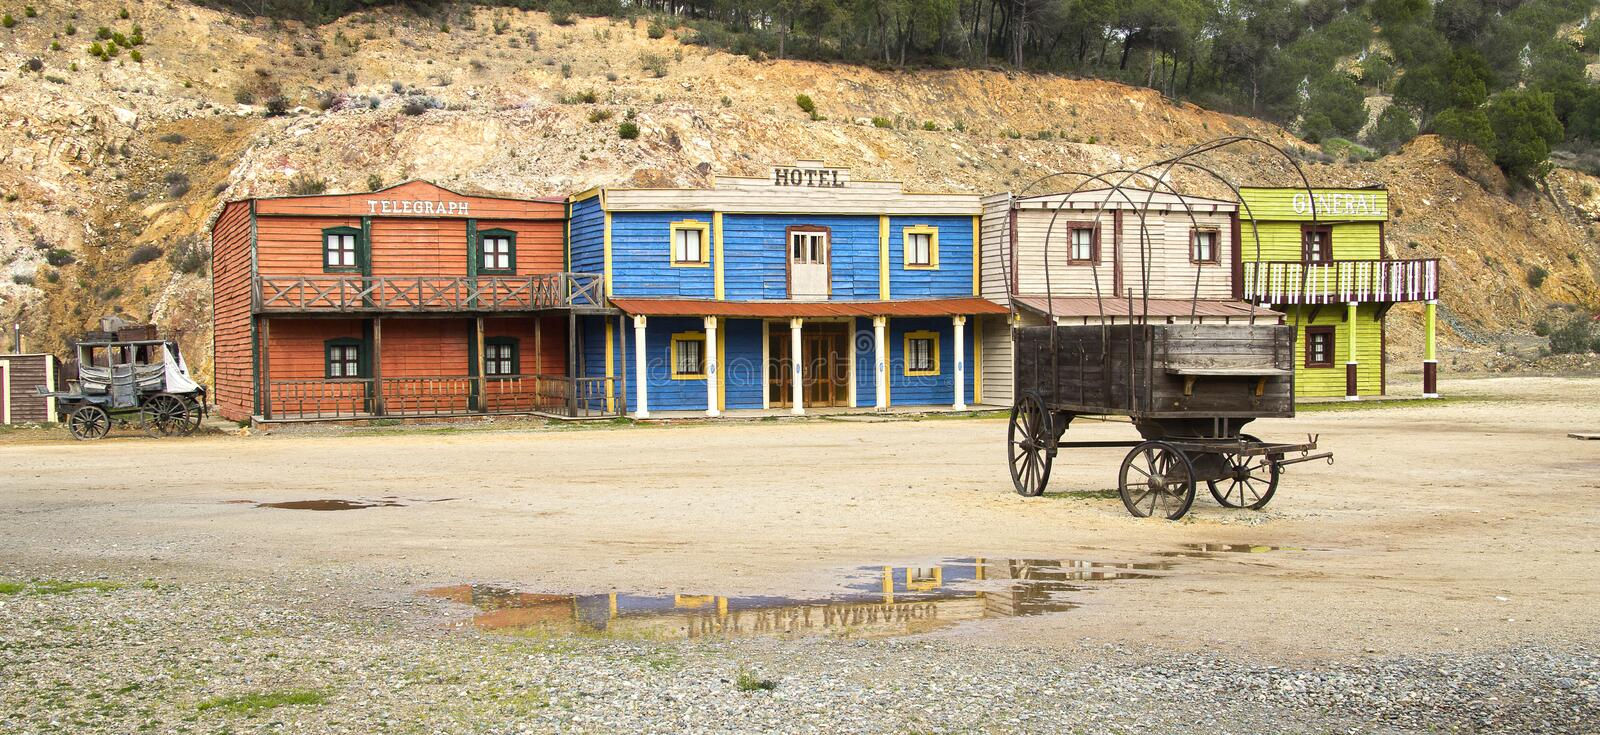 Oldwest image stock